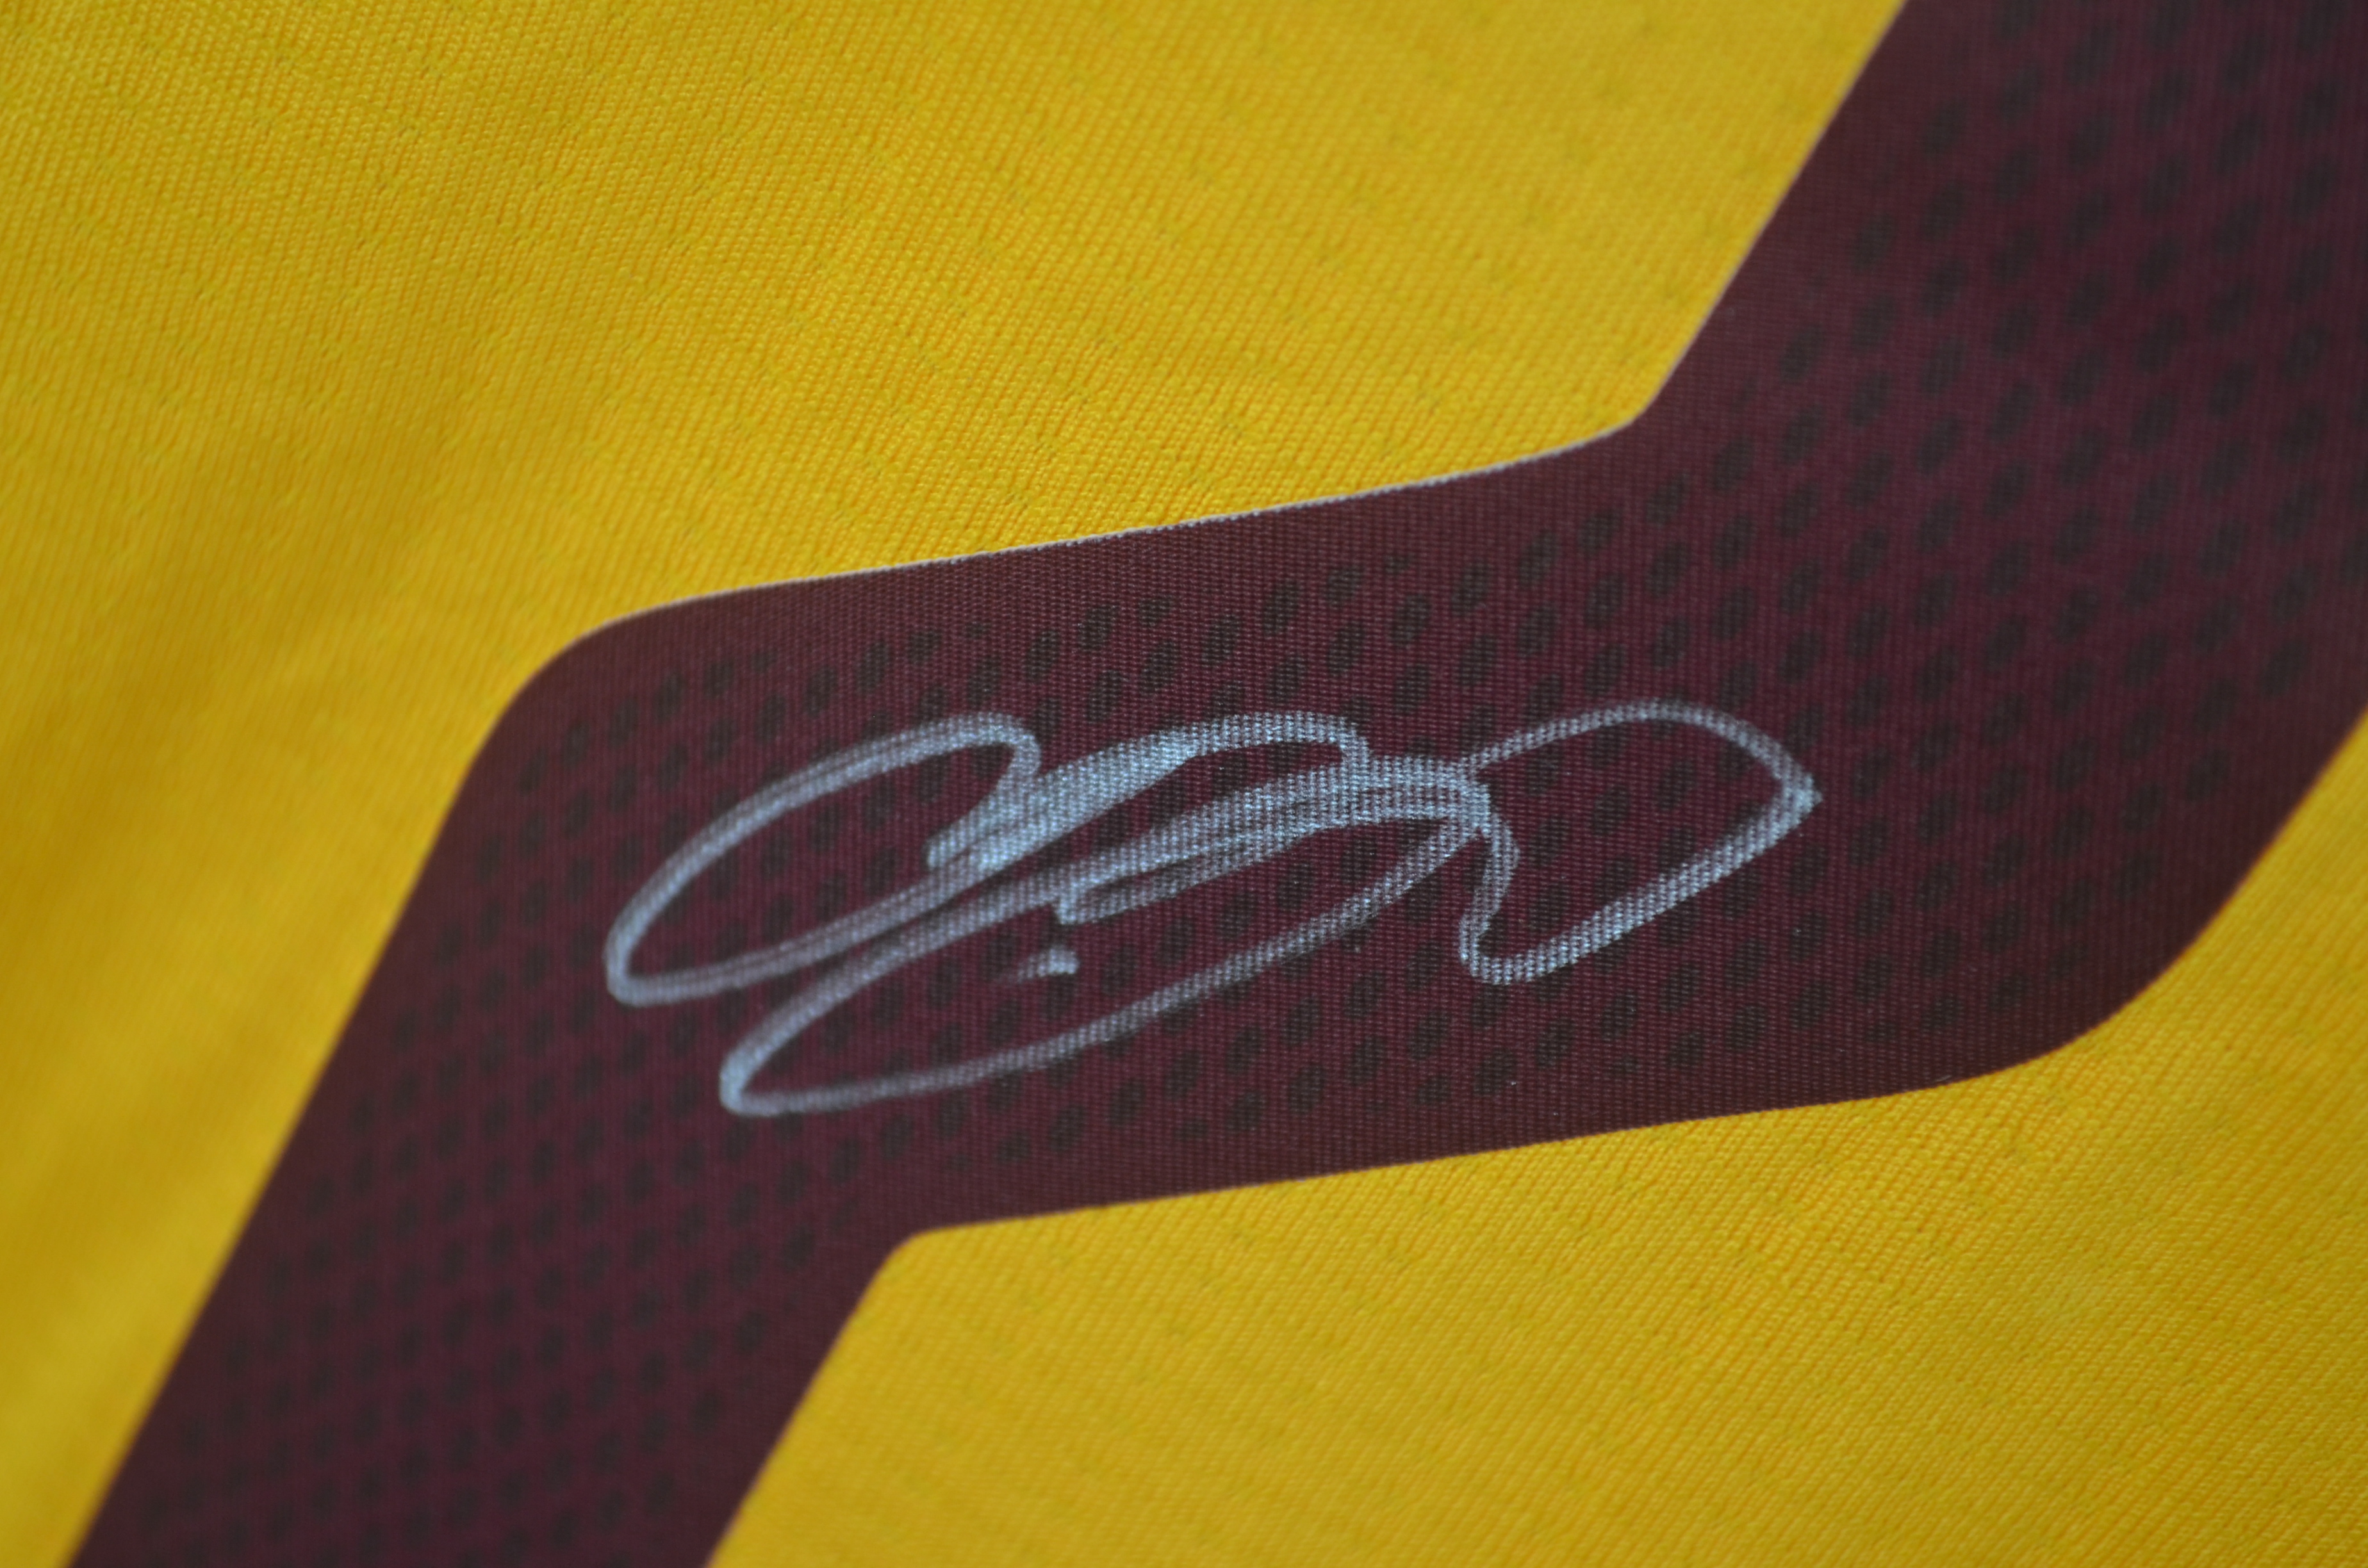 65518070b ... LeBron James Autographed 2014 Cleveland Cavaliers LE Christmas Jersey  UDA ...